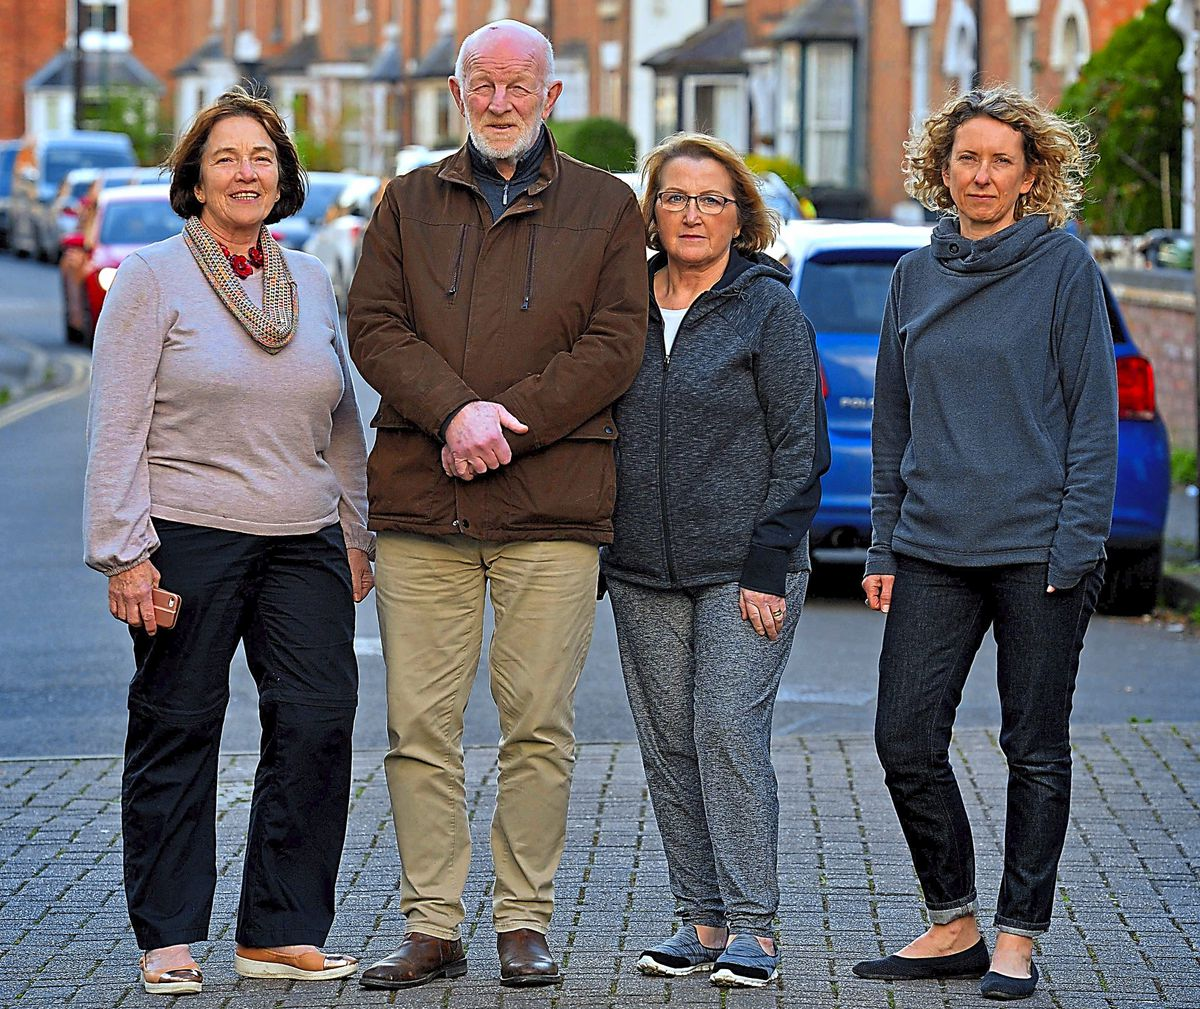 Alan Mosley with Lynn Gore, Anita Castree and Kate Garner in Castlefields